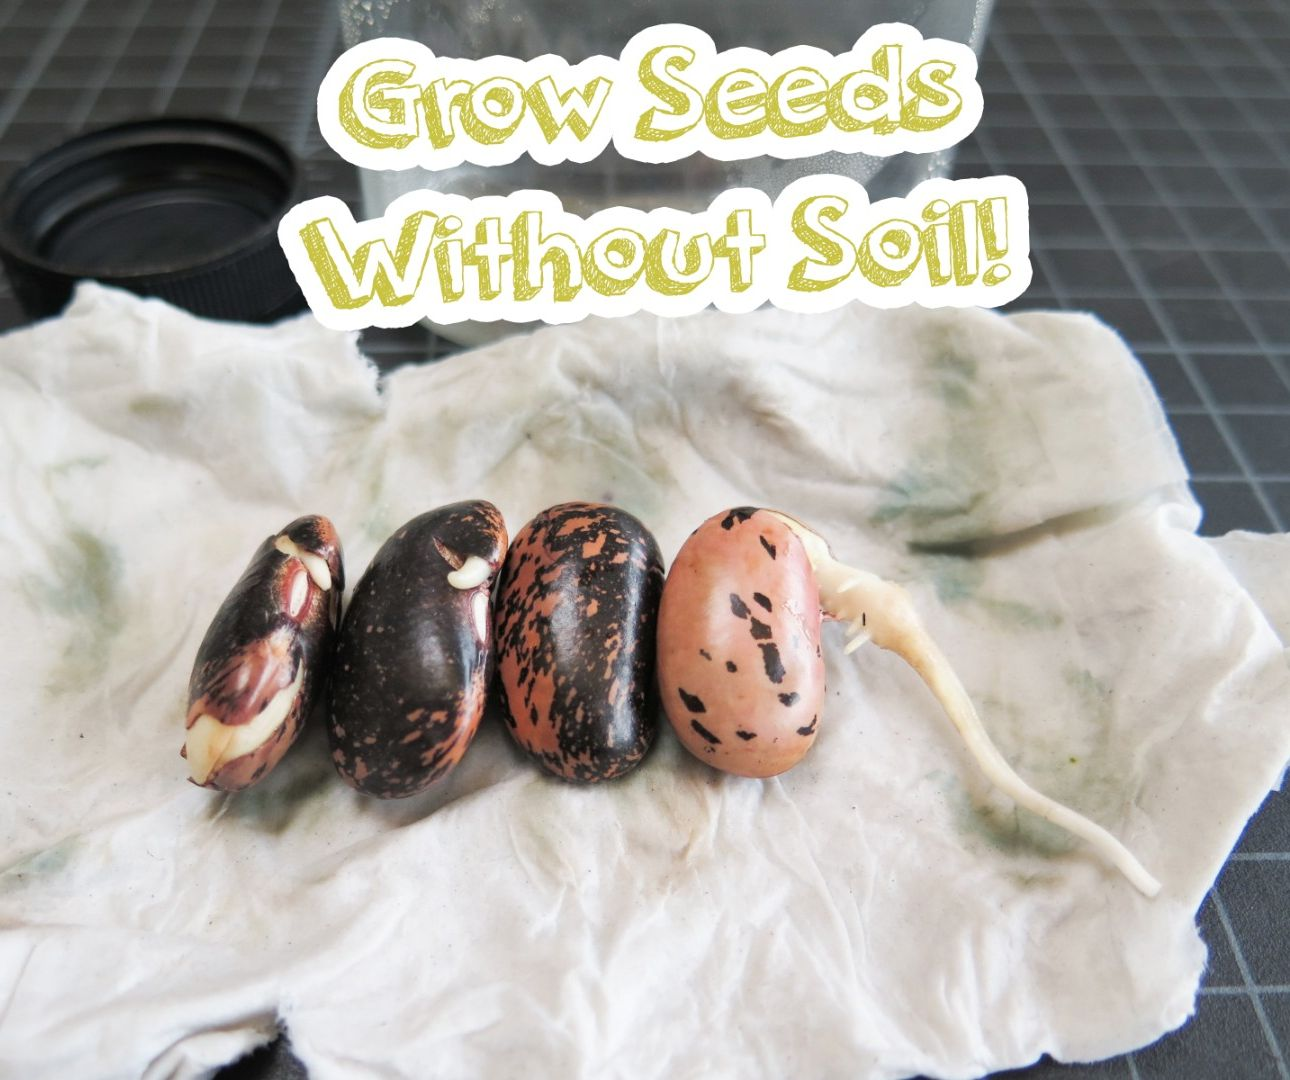 Grow Seeds Without Soil!